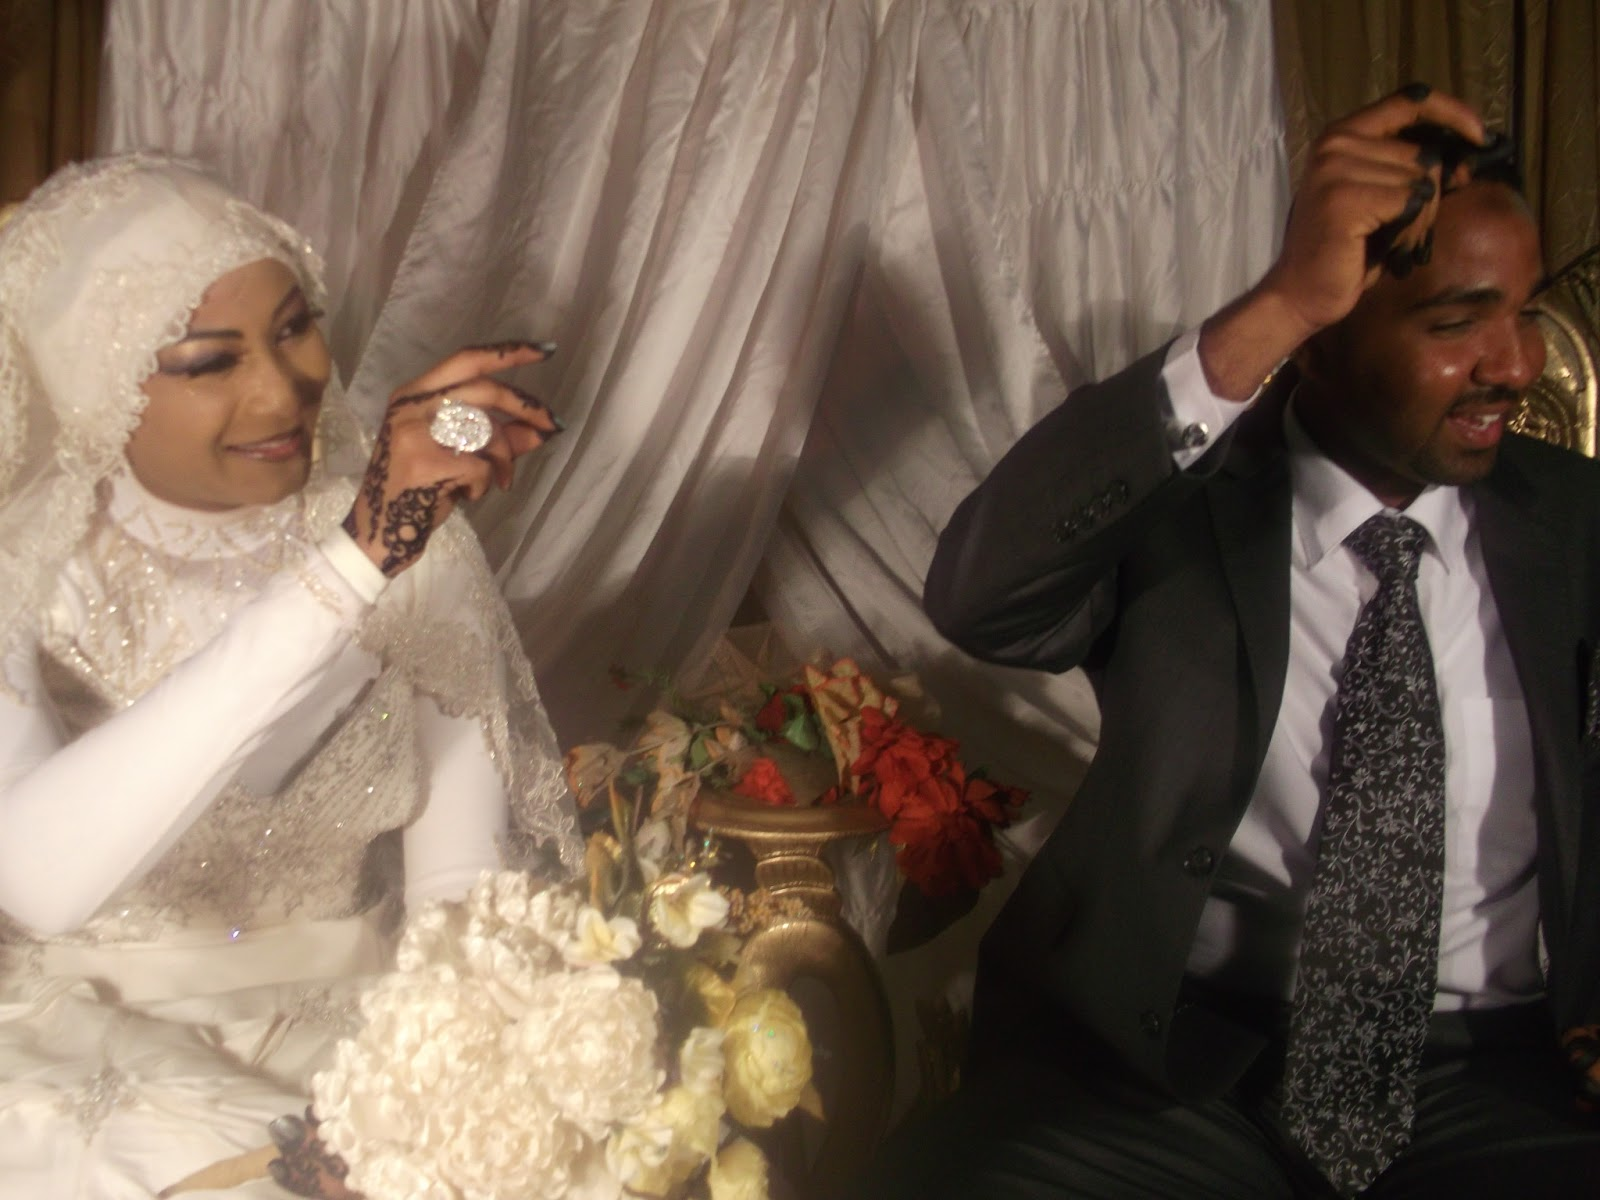 Sudanese wedding rituals and traditions - Let S Talk About Marriage